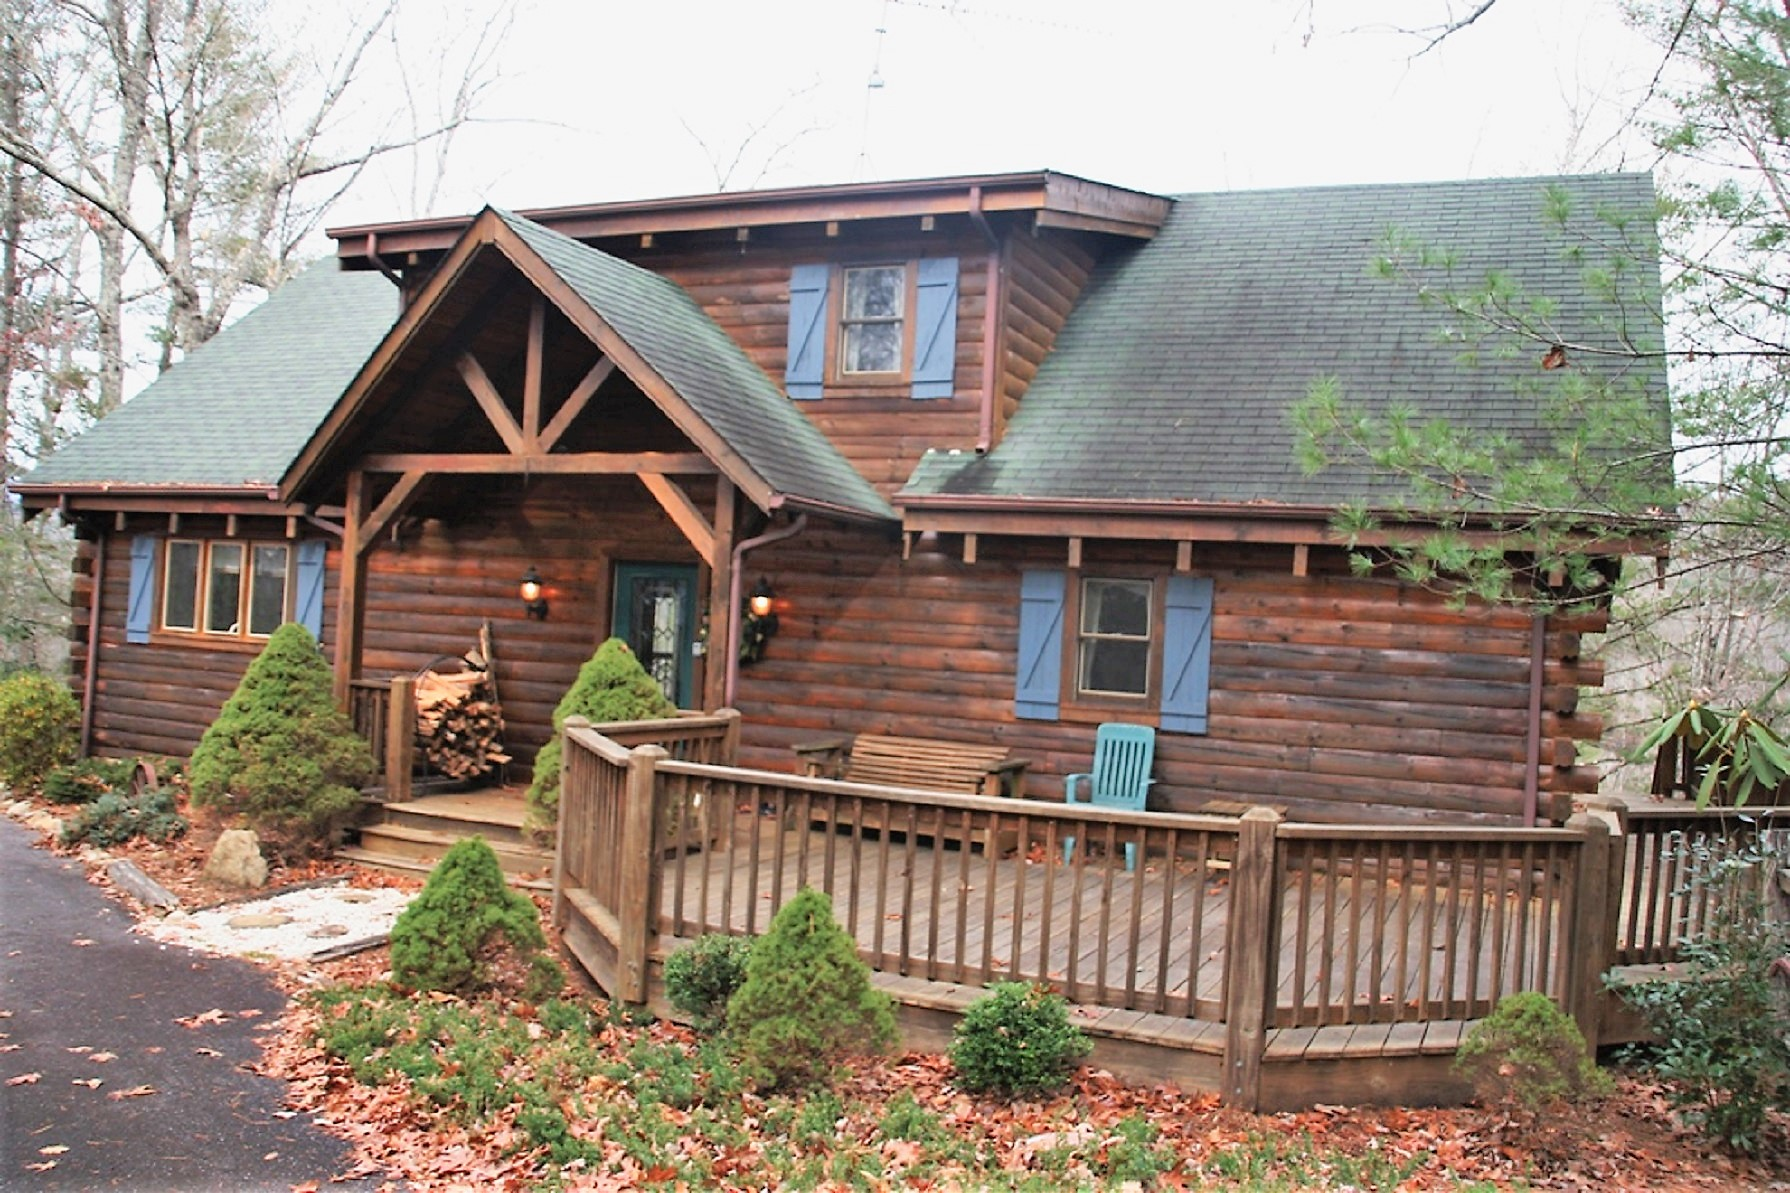 *****SOLD*****MOUNTAIN LOG HOME WITH VIEWS, FOR SALE IN LEATHERWOOD MOUNTAIN High Horse